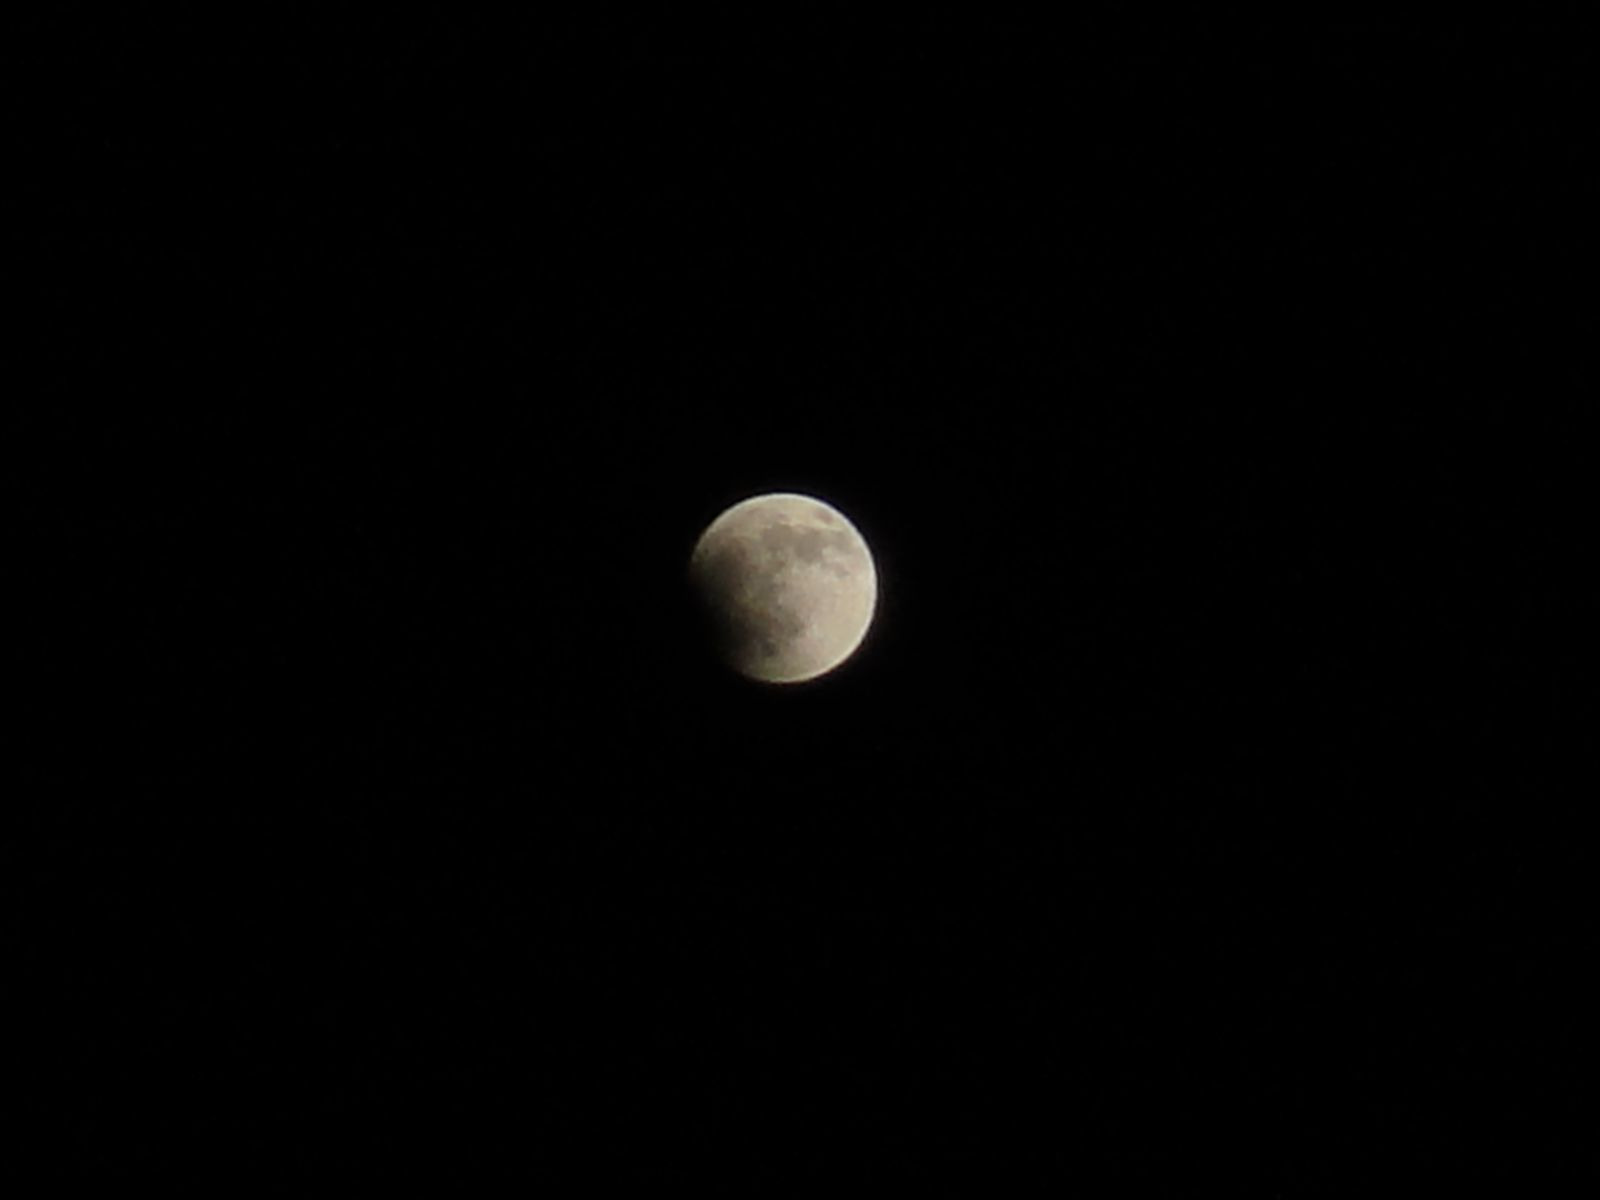 lunar_eclipse_014.jpg